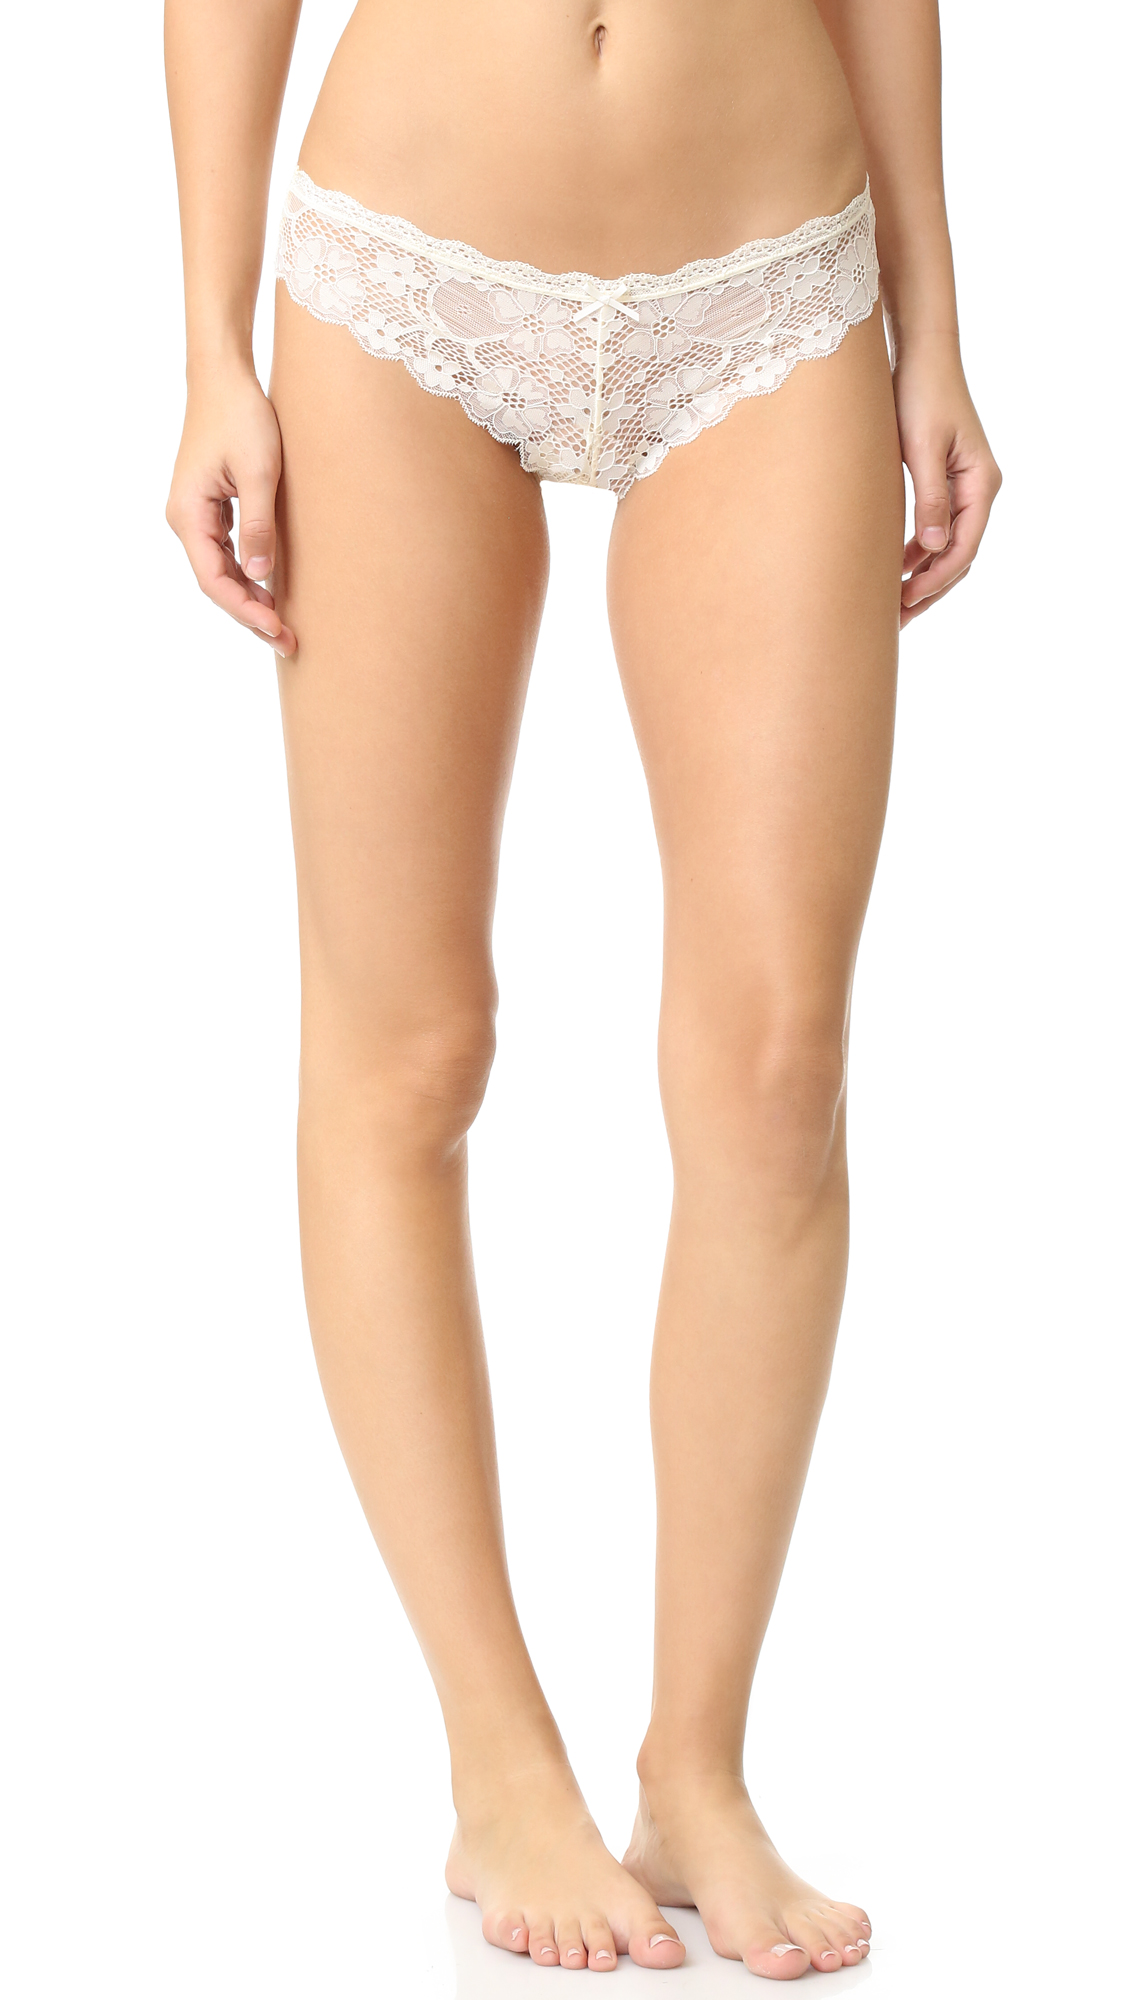 A Honeydew Intimates thong in floral lace. Scalloped edges. Jersey gusset. 82% nylon/18% spandex. Wash cold. Imported, China.